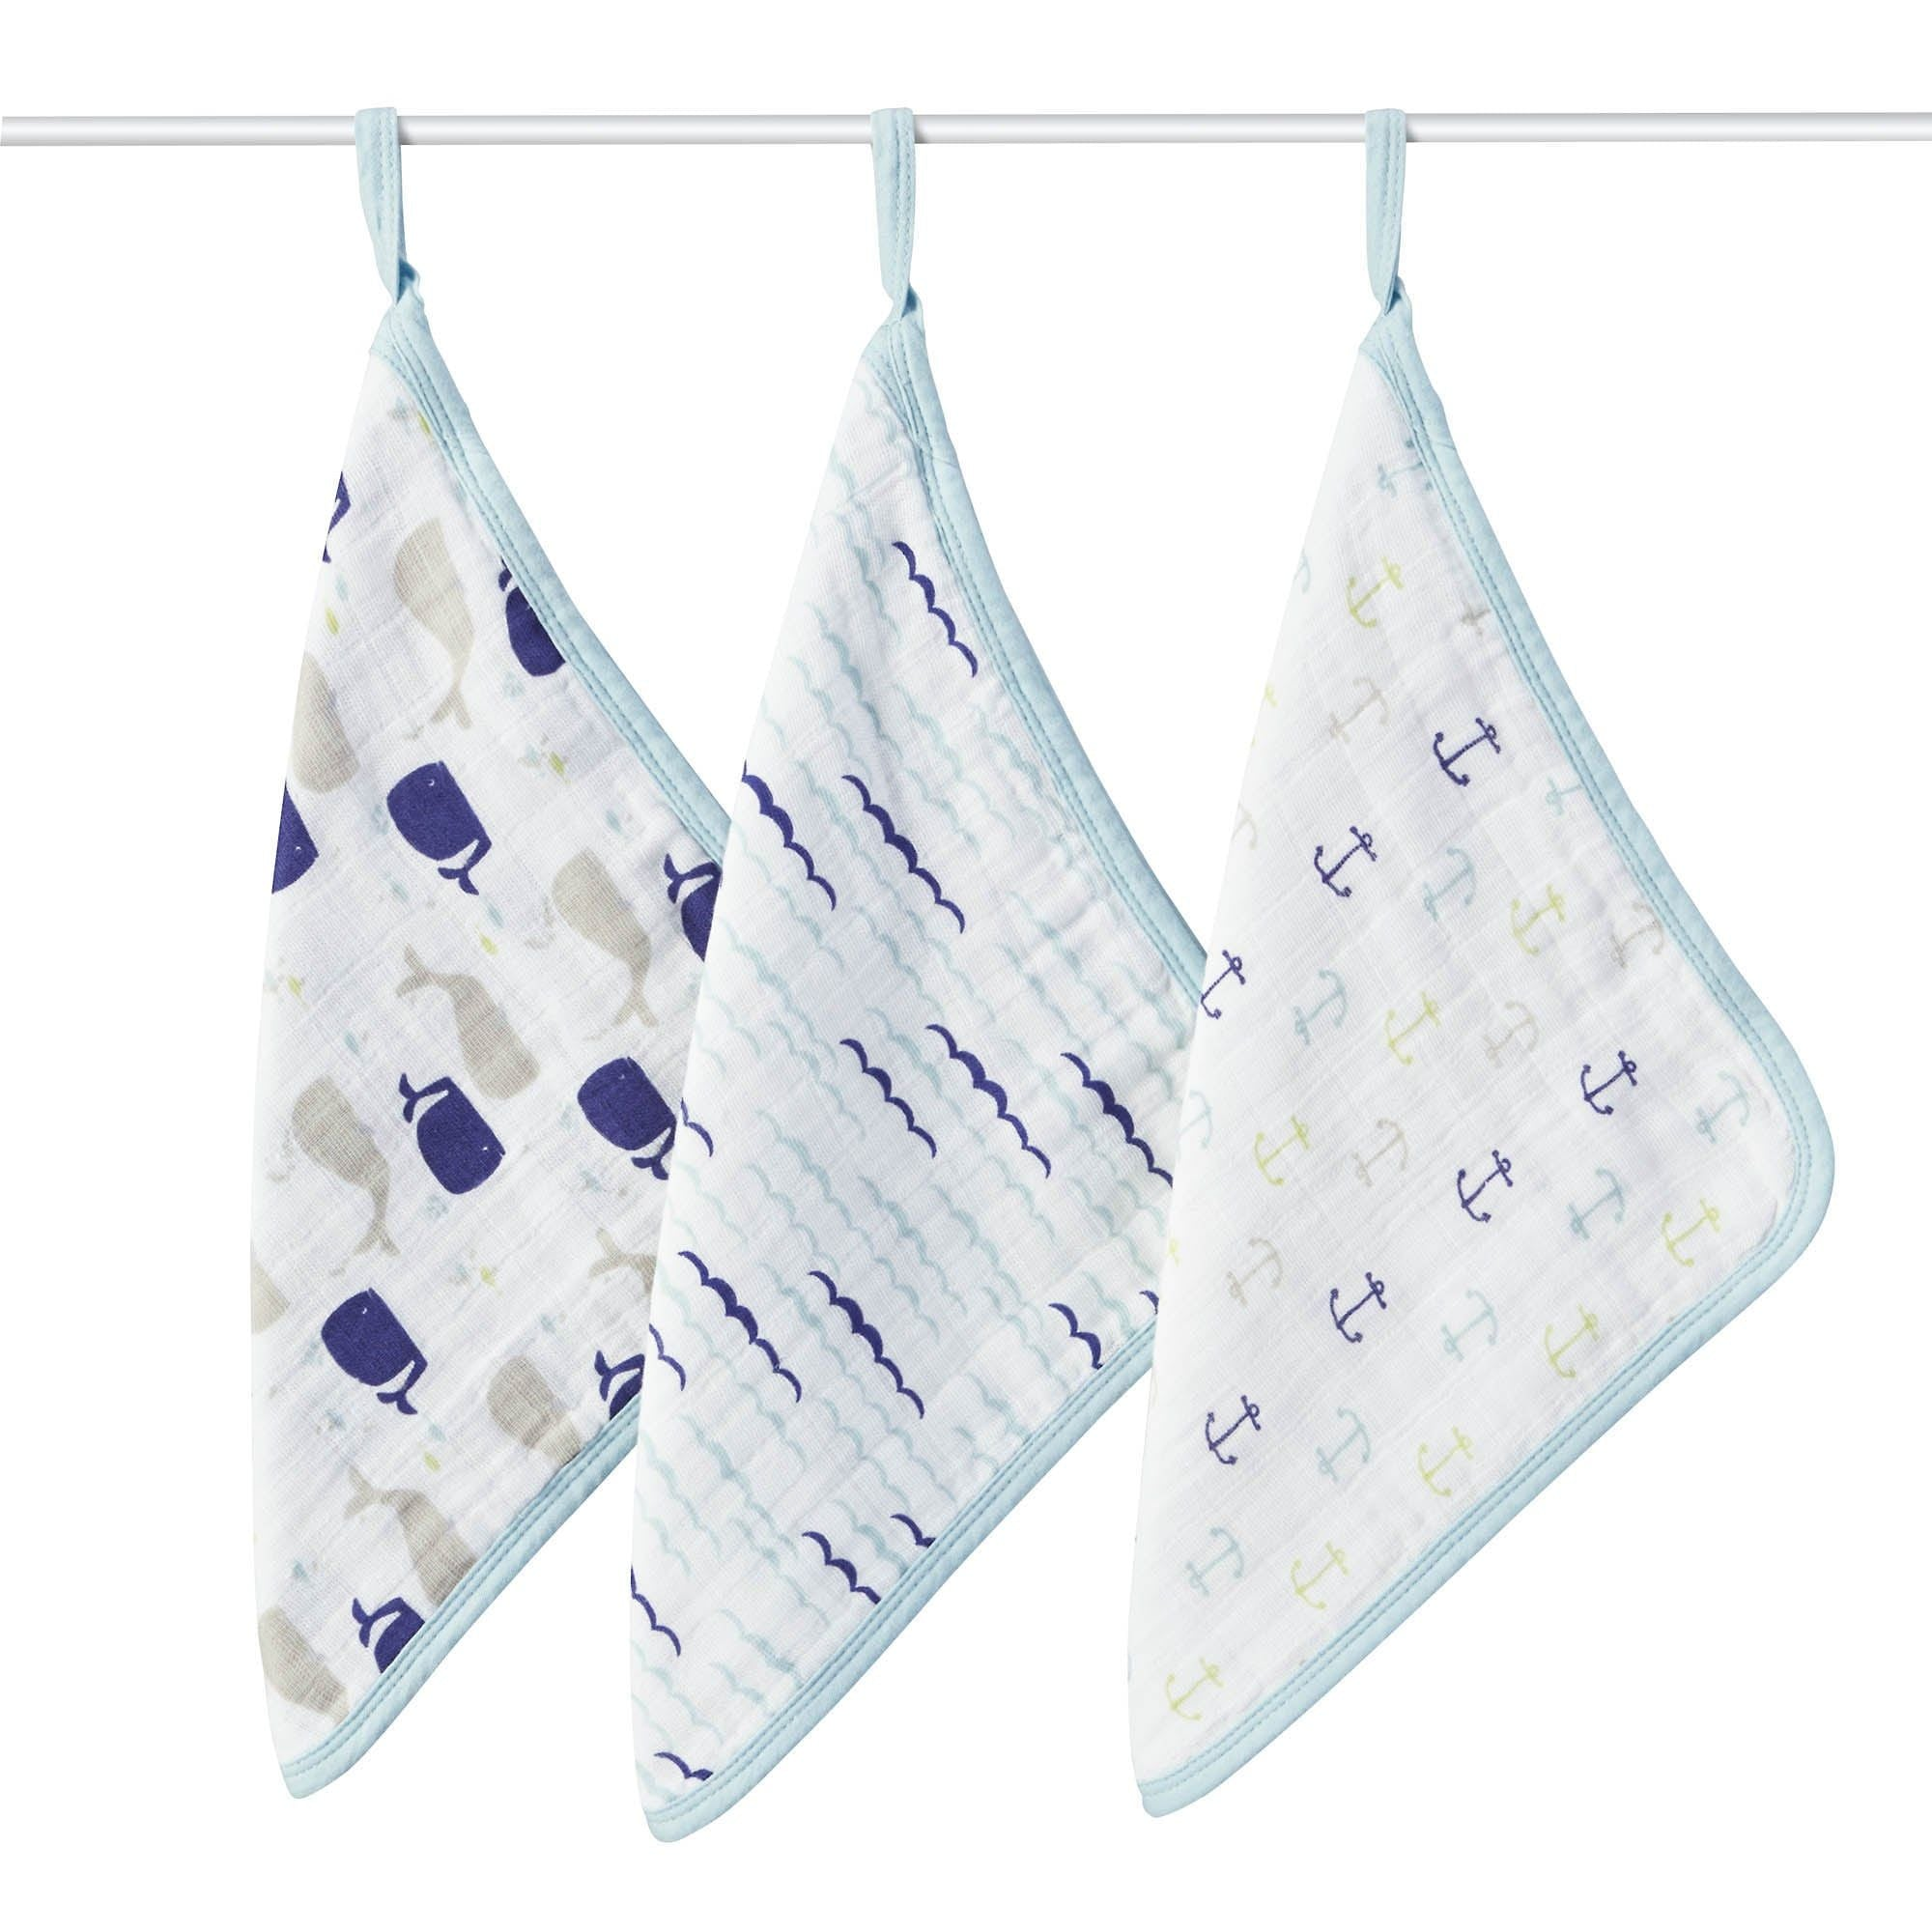 Muslin Washcloth Set 3-Pack - High Seas